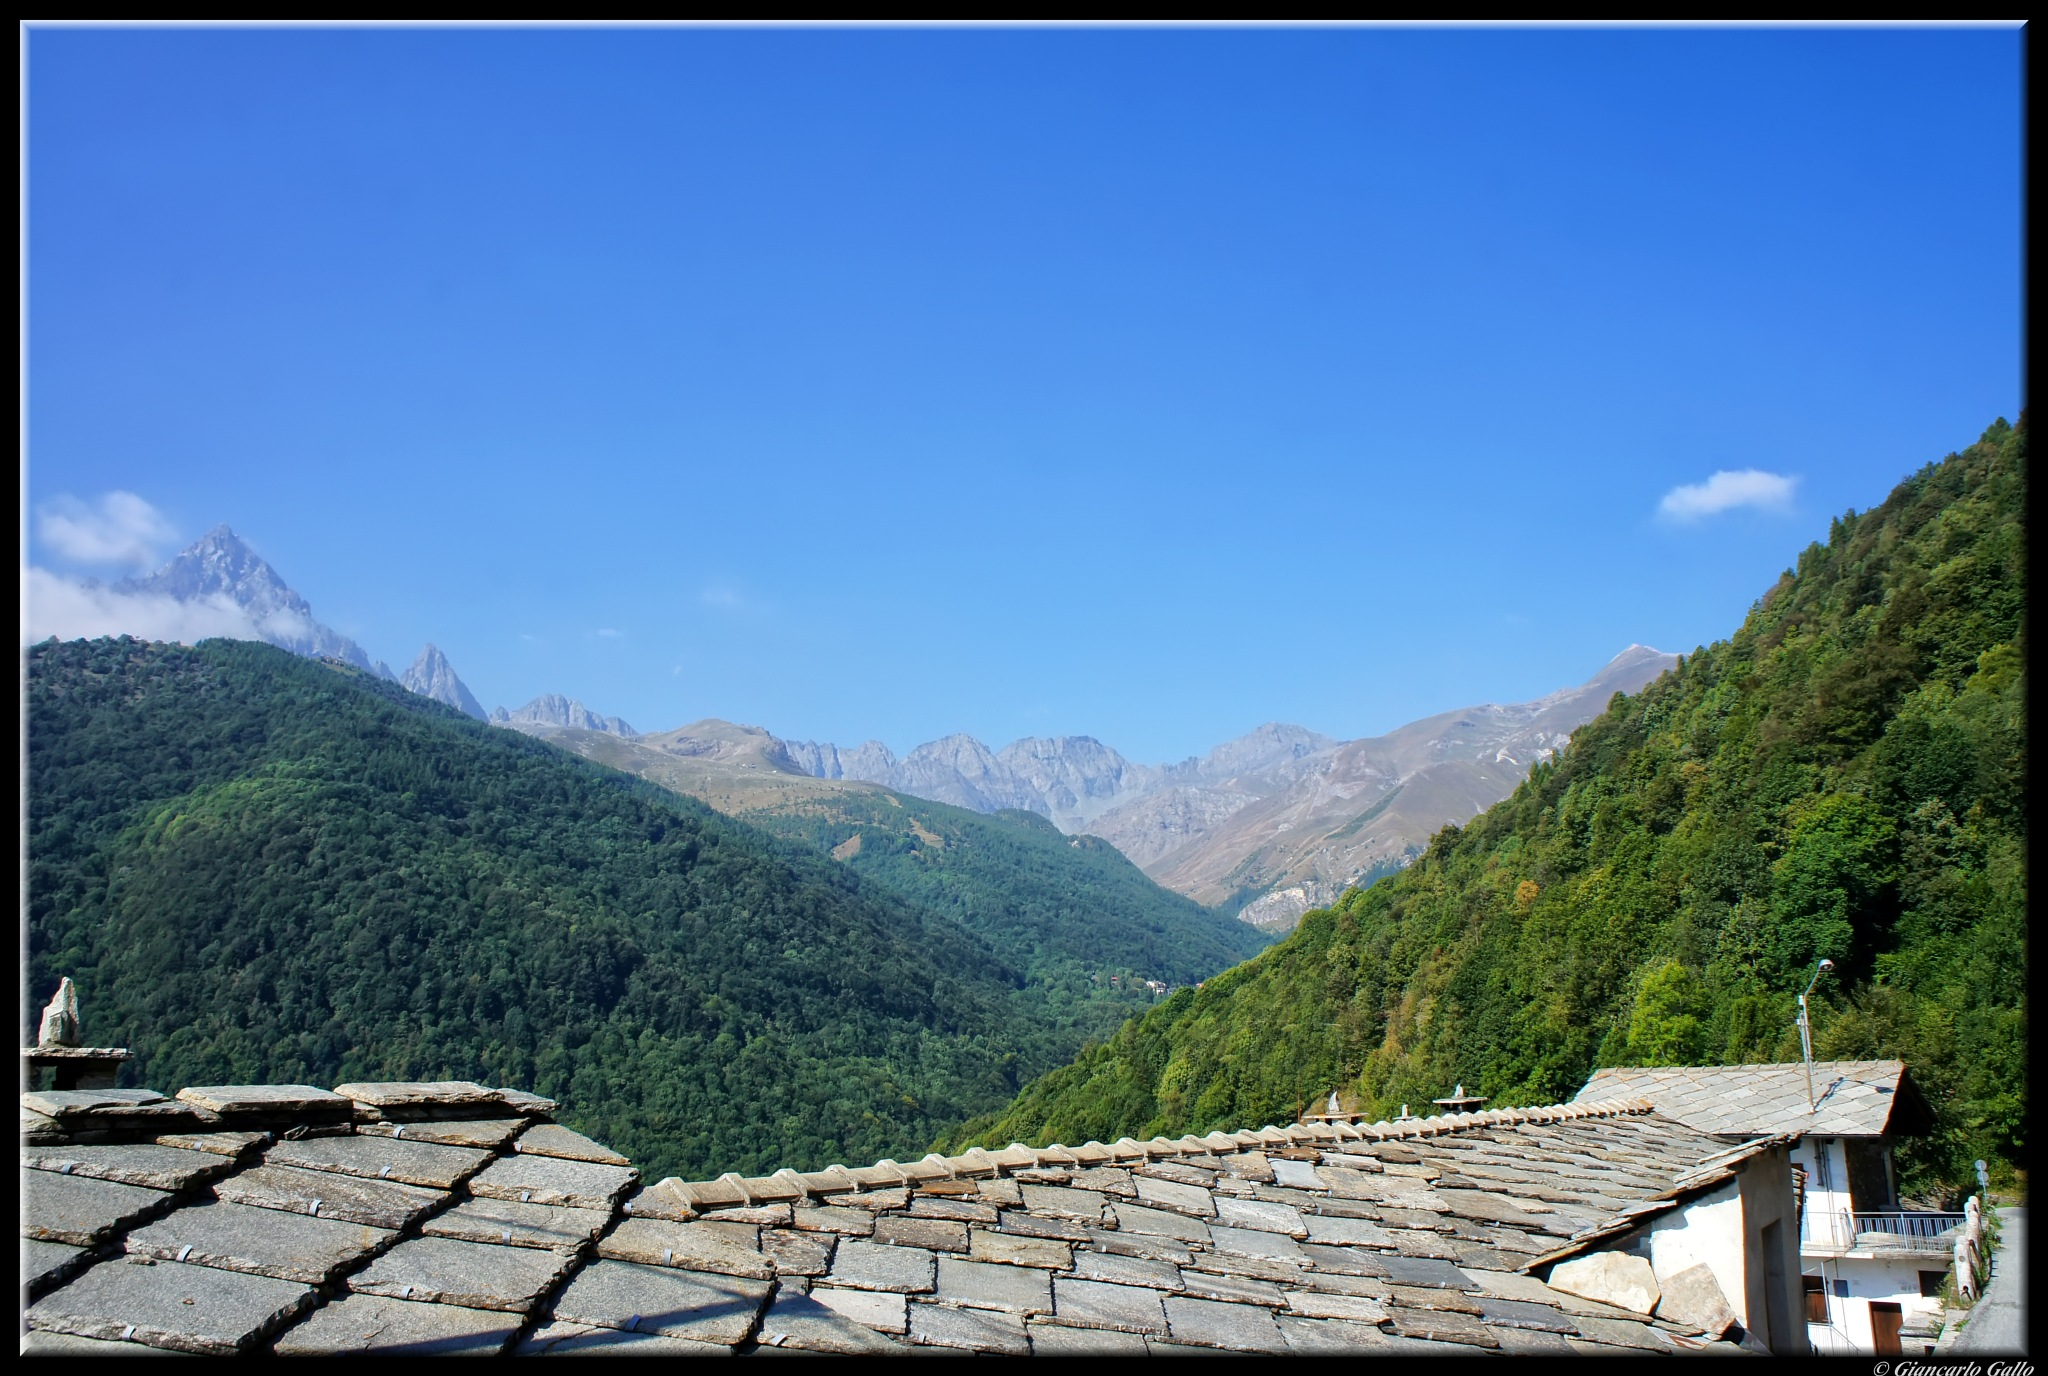 Stone roofs  by Giancarlo Gallo